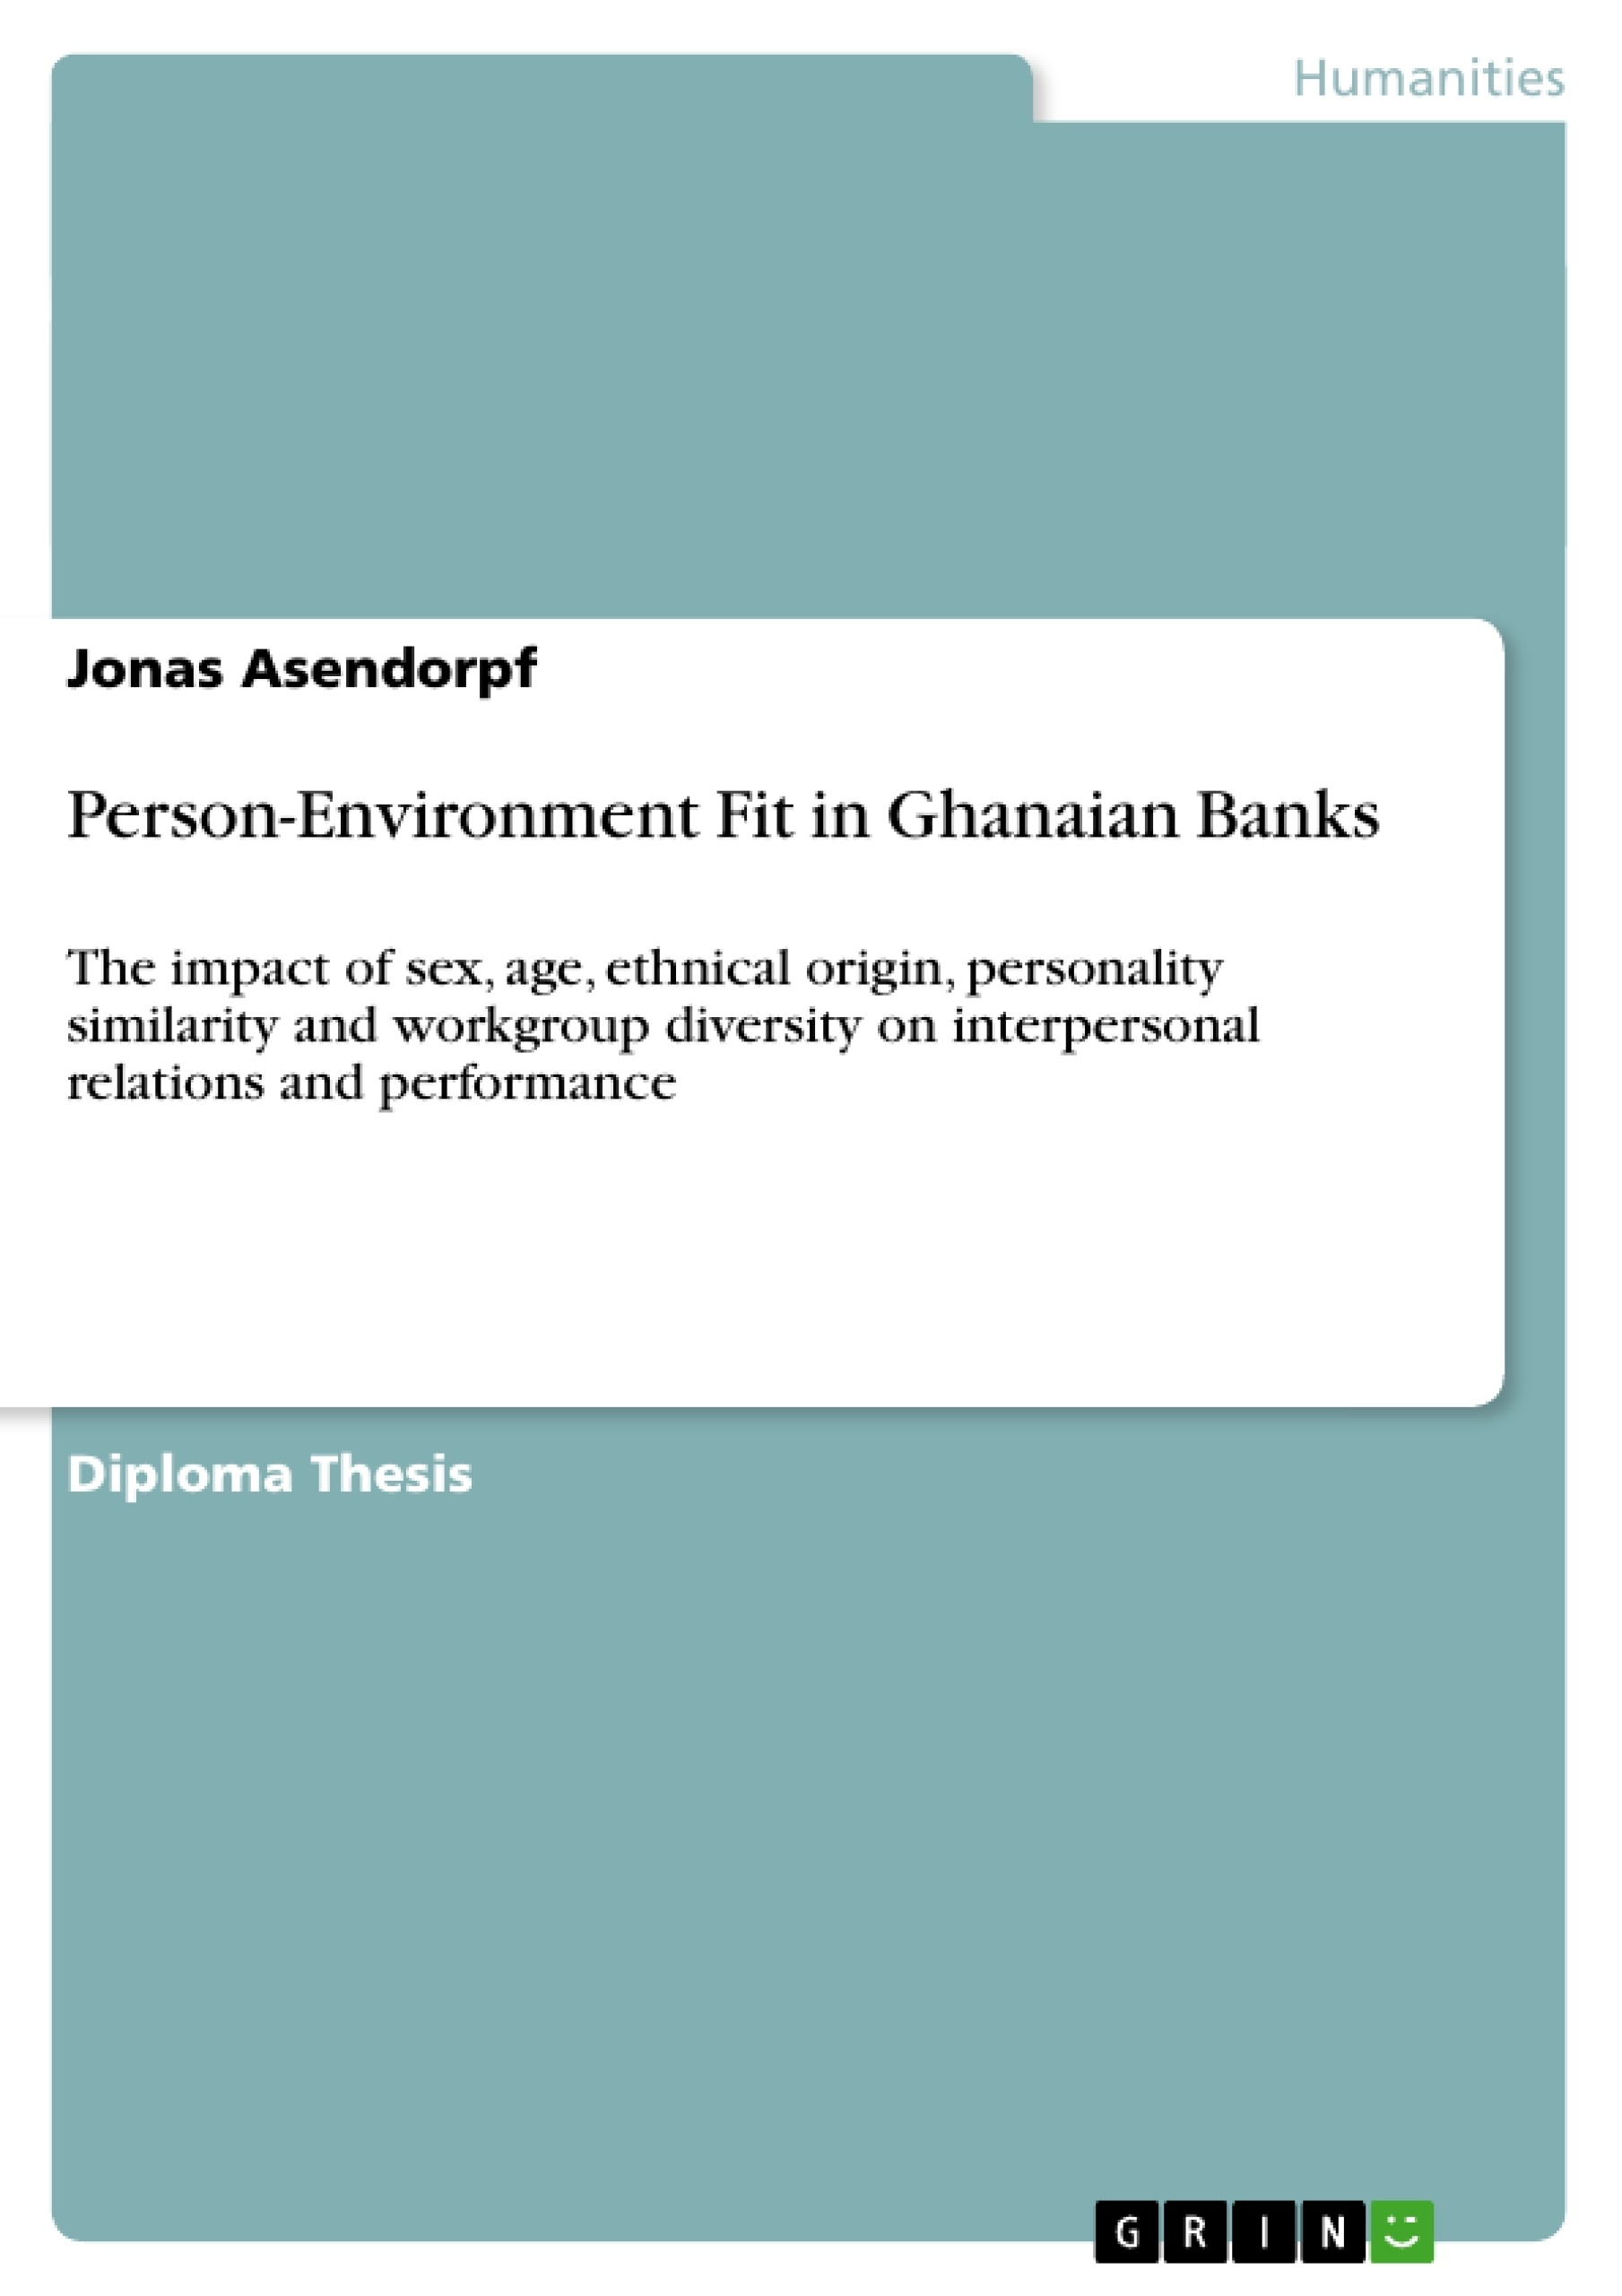 Title: Person-Environment Fit in Ghanaian Banks